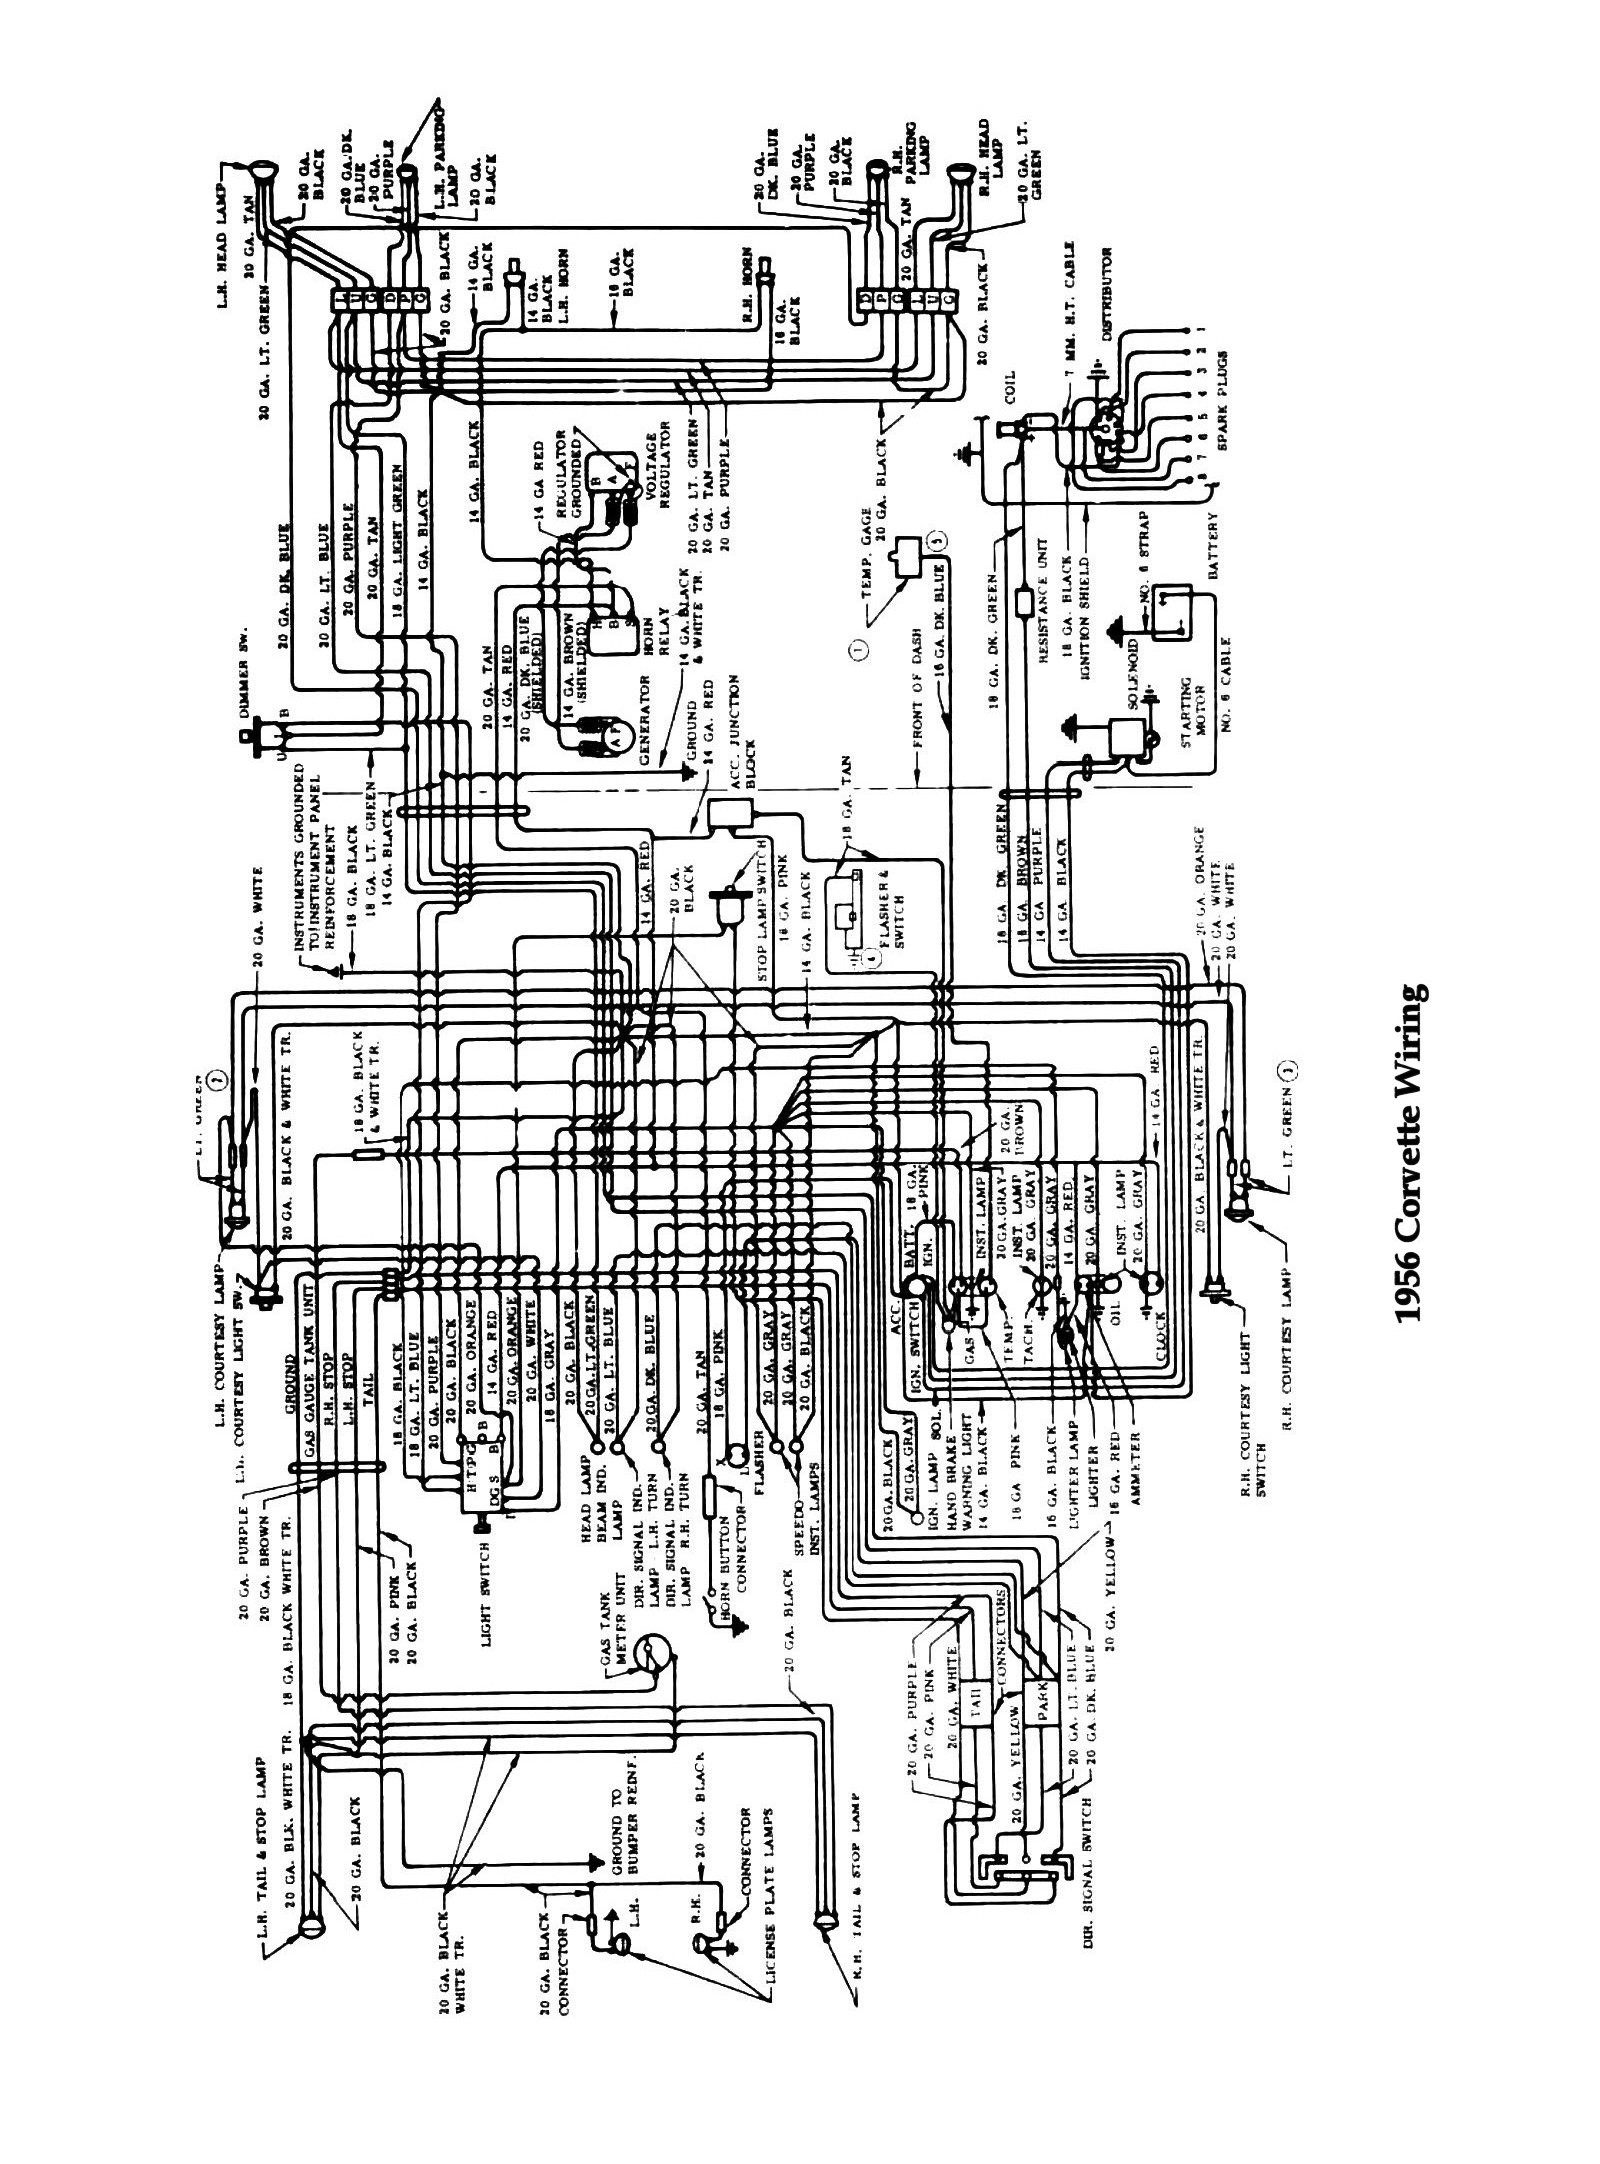 hight resolution of chevy corvette wiring diagrams 1954 1956 5 19 nuerasolar co u2022 c5 corvette wiring diagram